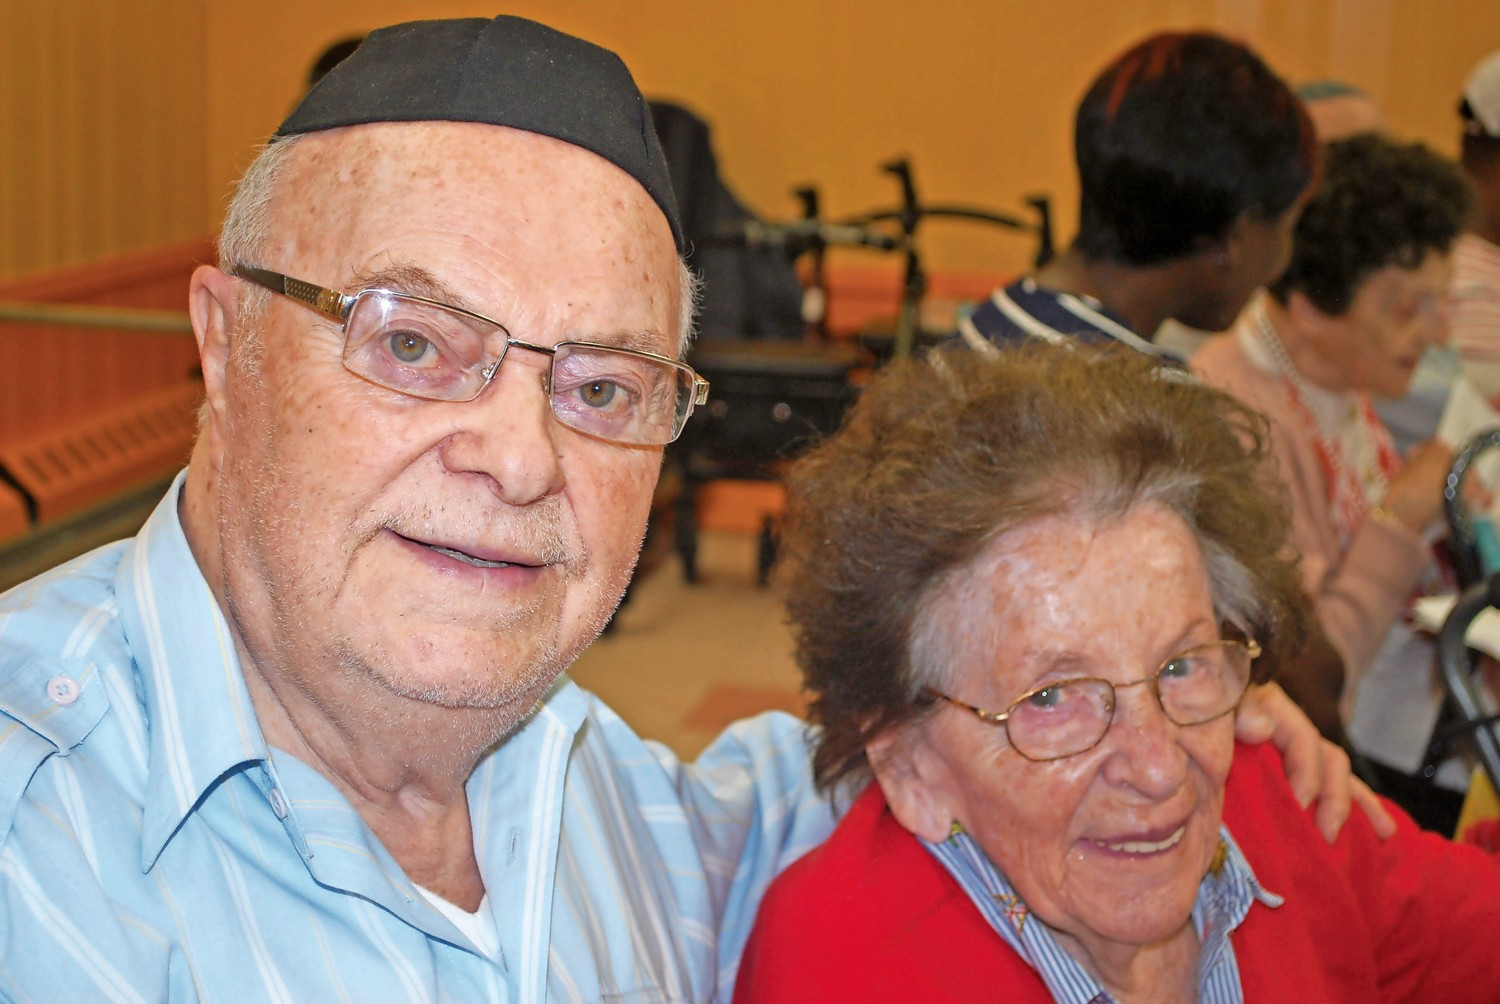 Jack and Bonnie Rybsztajn, residents of Woodmere, are Holocaust survivors who have been married for 74 years.